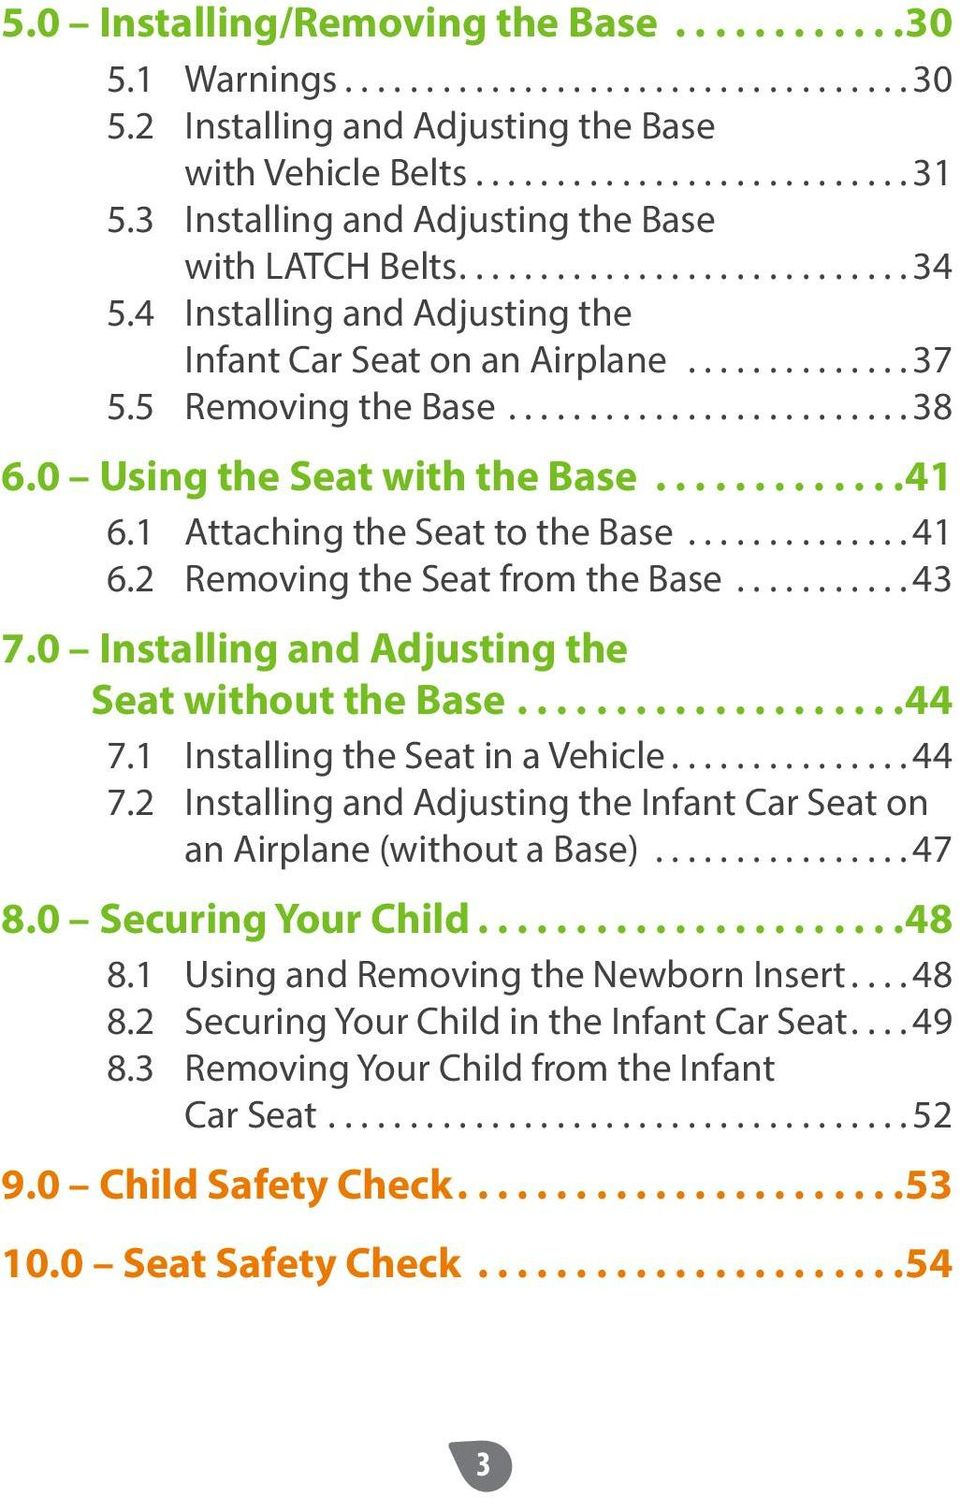 ..43 7.0 Installing and Adjusting the Seat without the Base...44 7.1 Installing the Seat in a Vehicle...44 7.2 Installing and Adjusting the Infant Car Seat on an Airplane (without a Base)...47 8.